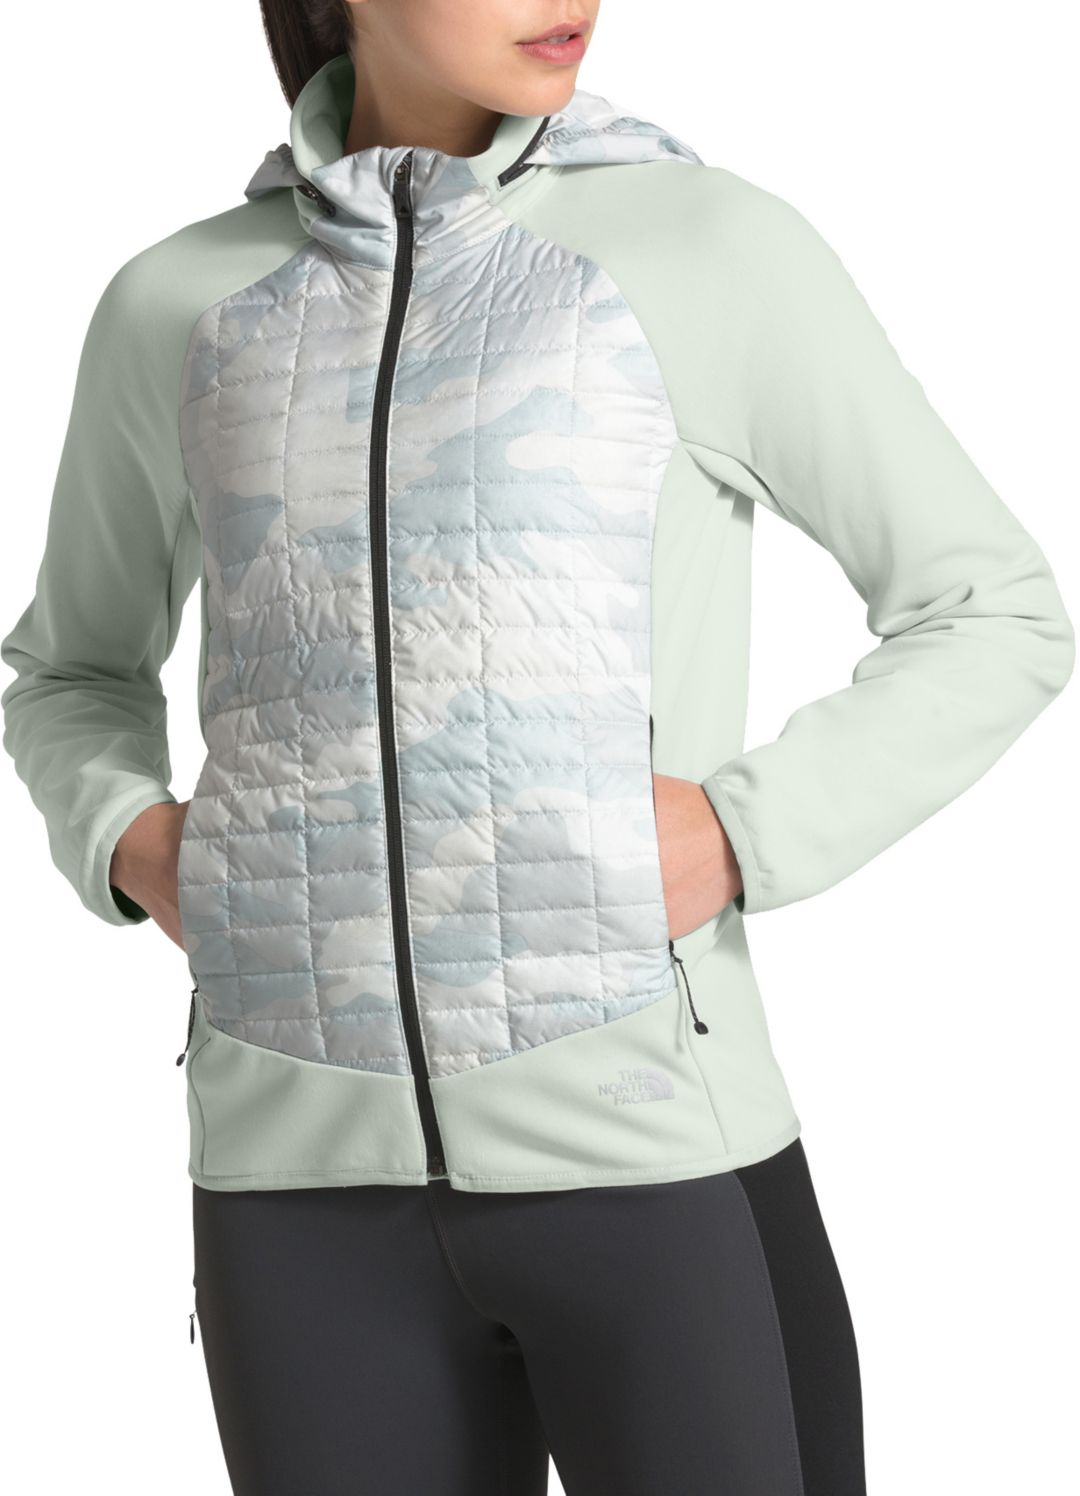 49fb7fbde The North Face Women's ThermoBall Hybrid Jacket